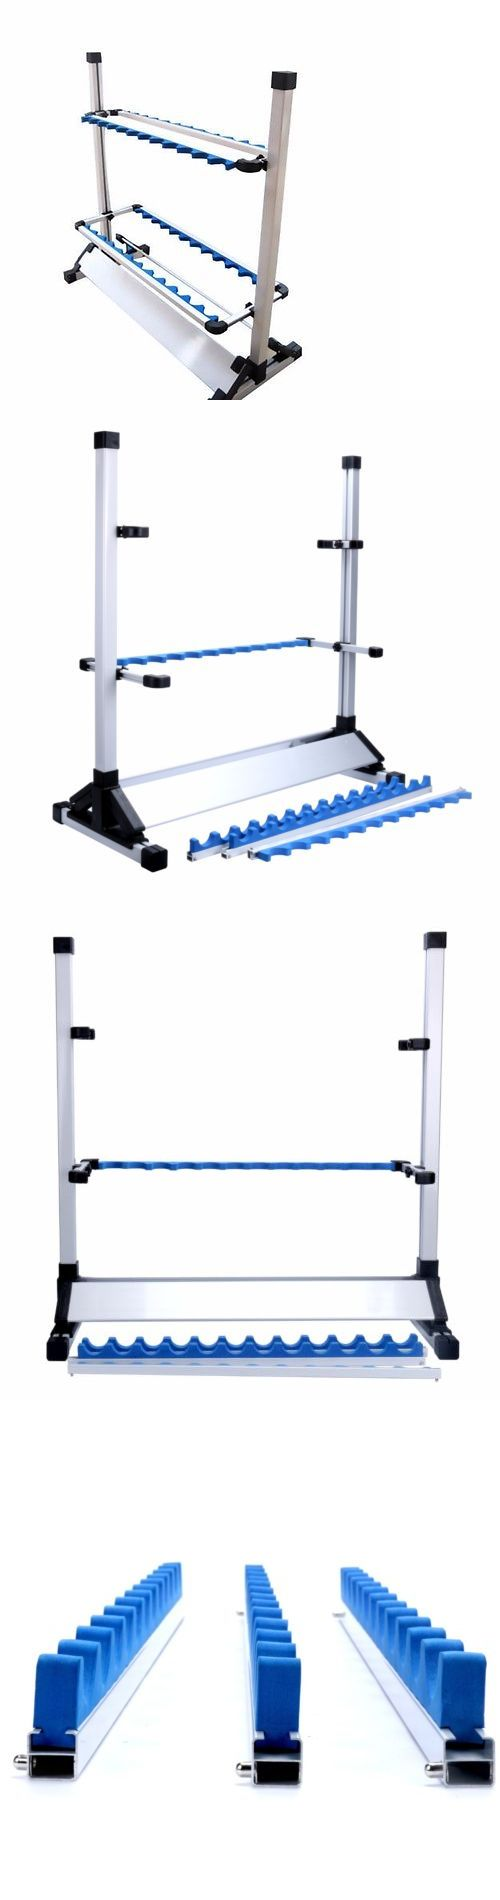 Rod Rests and Holders 72665: Hot Sale White Fishing 24 Rod Rack Pole Holder Aluminum Alloy Stand Storage Tool -> BUY IT NOW ONLY: $44.83 on eBay!